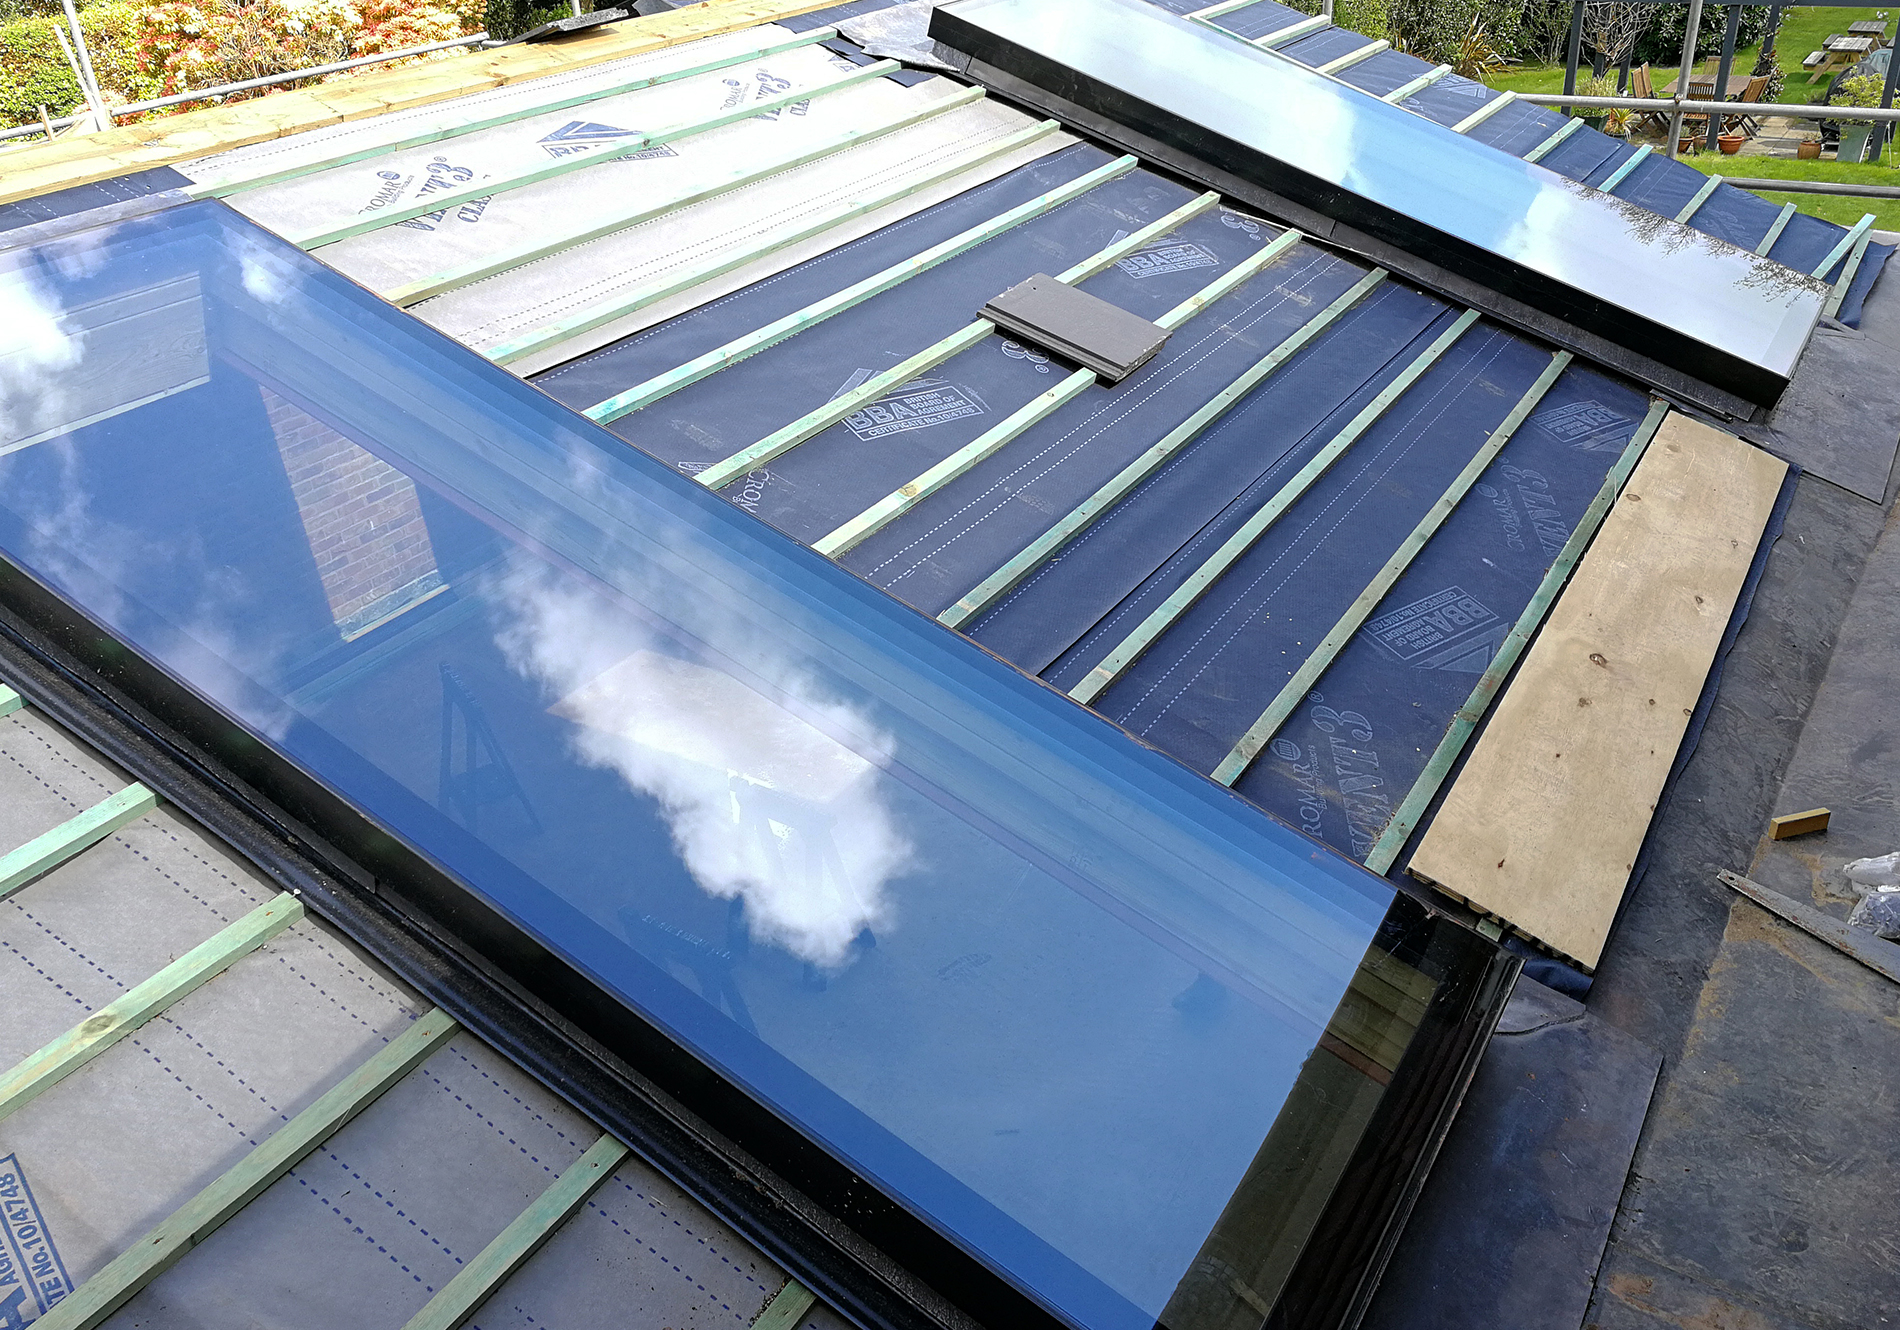 Exact-pine-view-close-pure-glass-flat-roof-lights_01